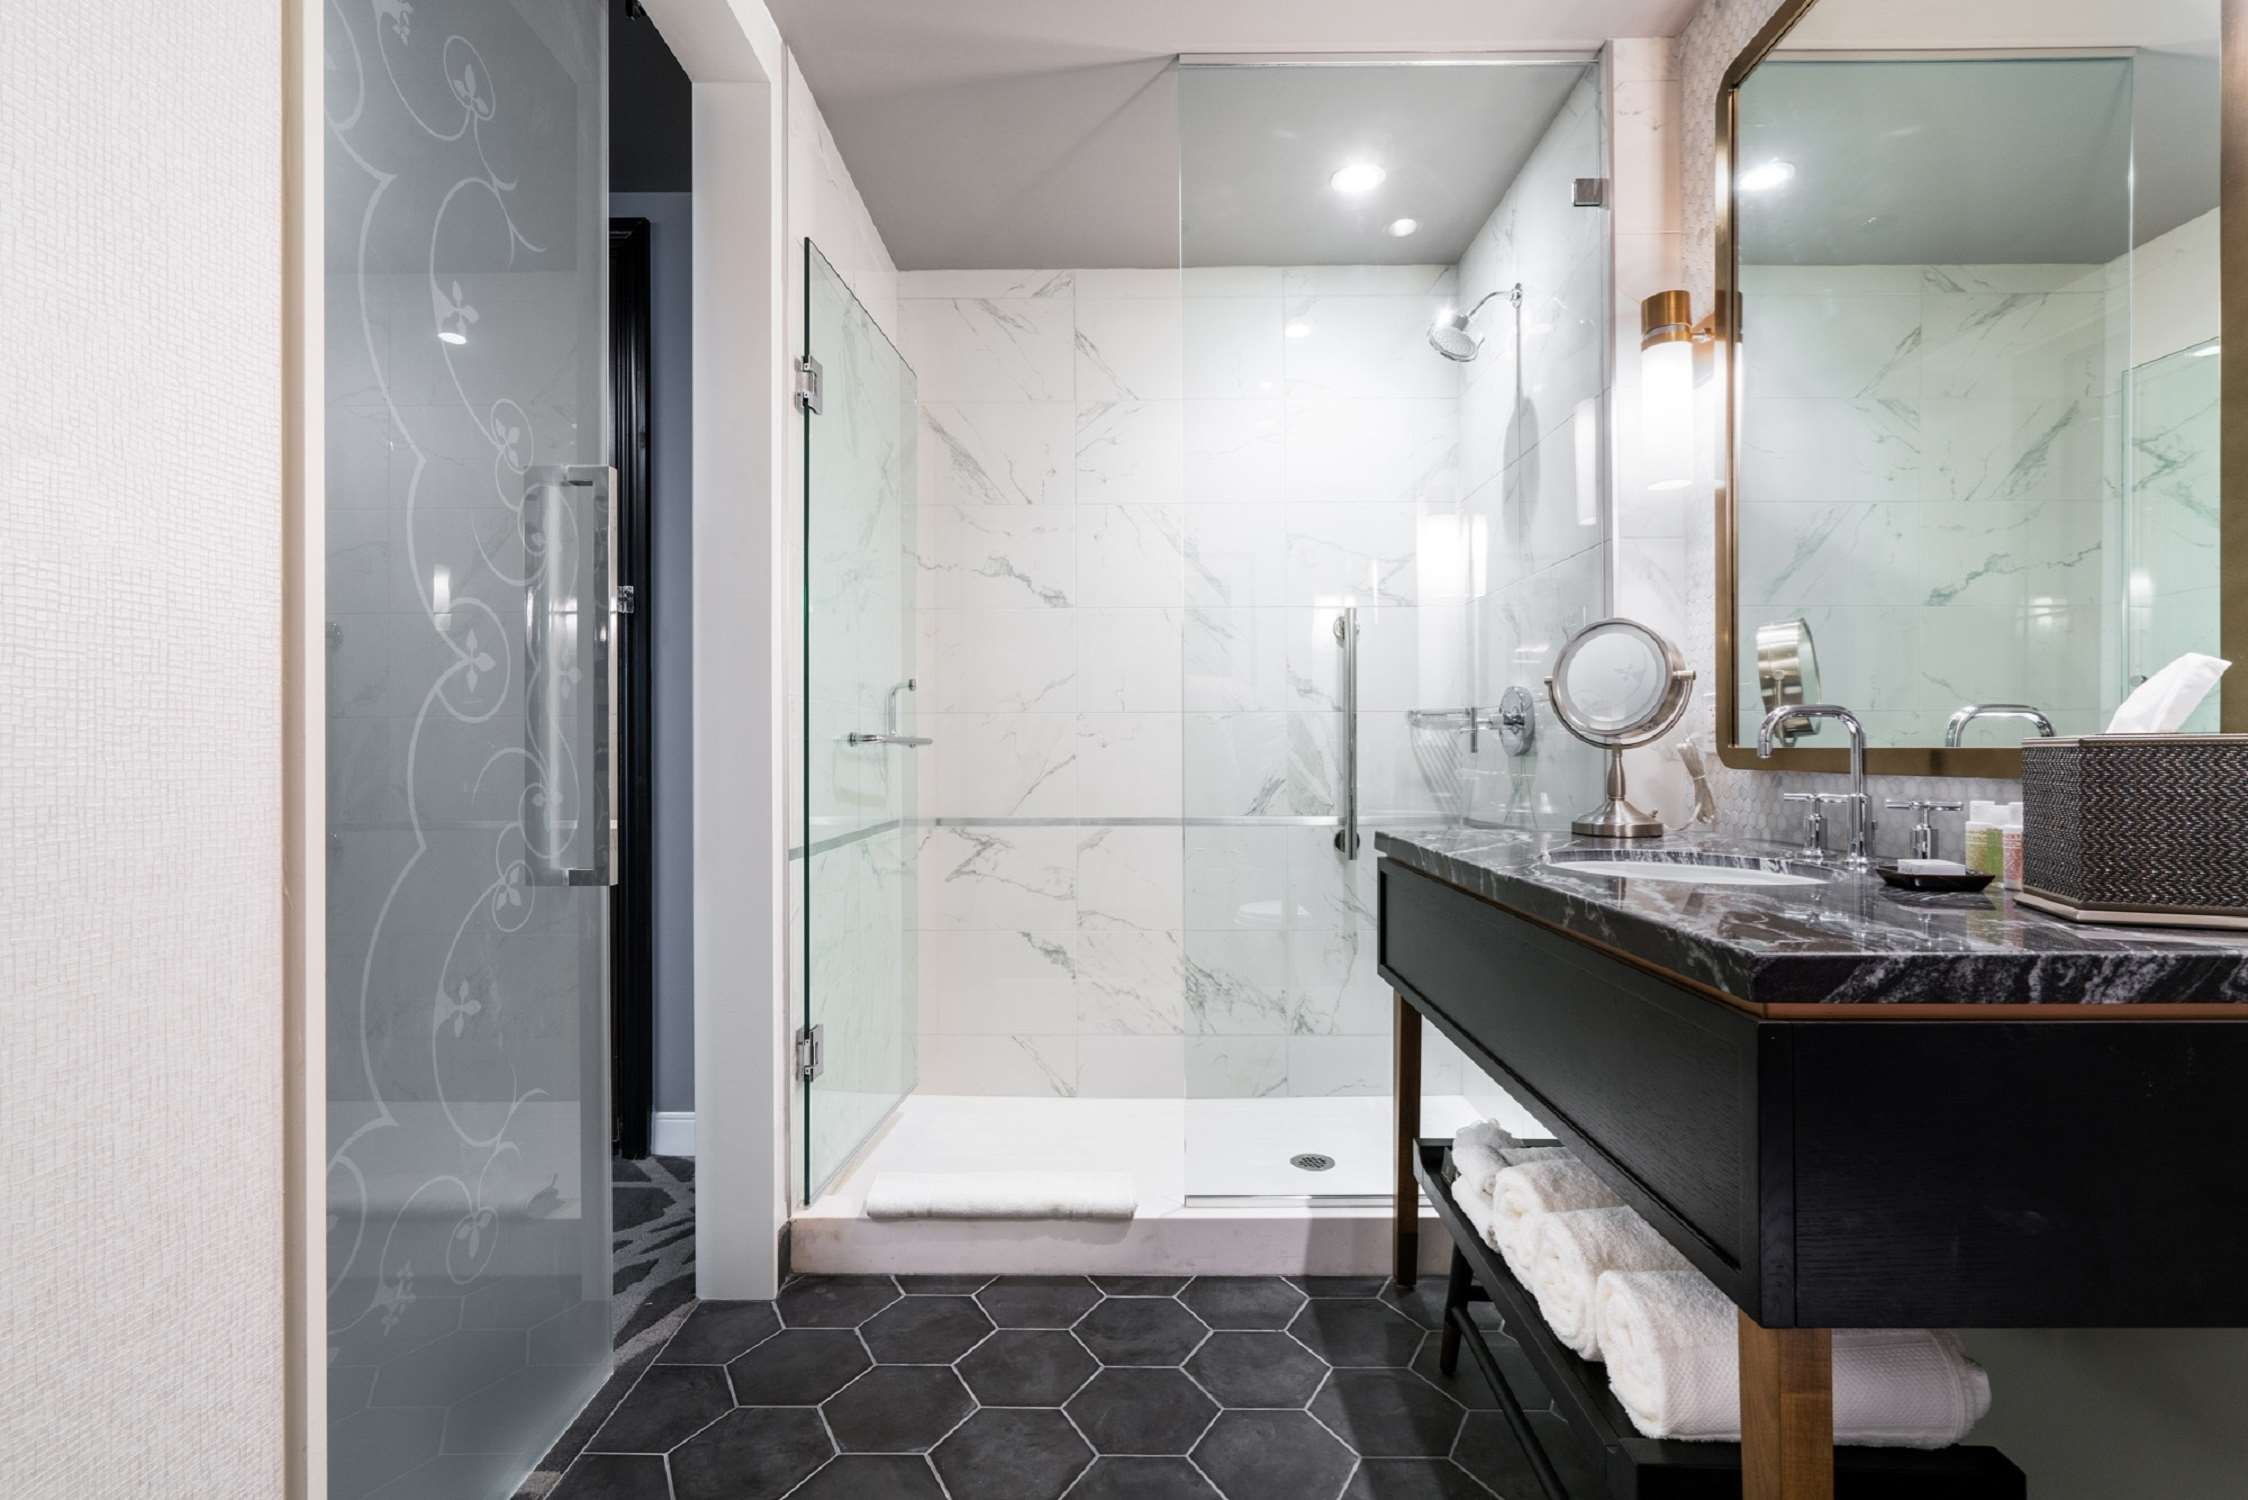 LondonHouse Chicago, Curio Collection by Hilton image 25